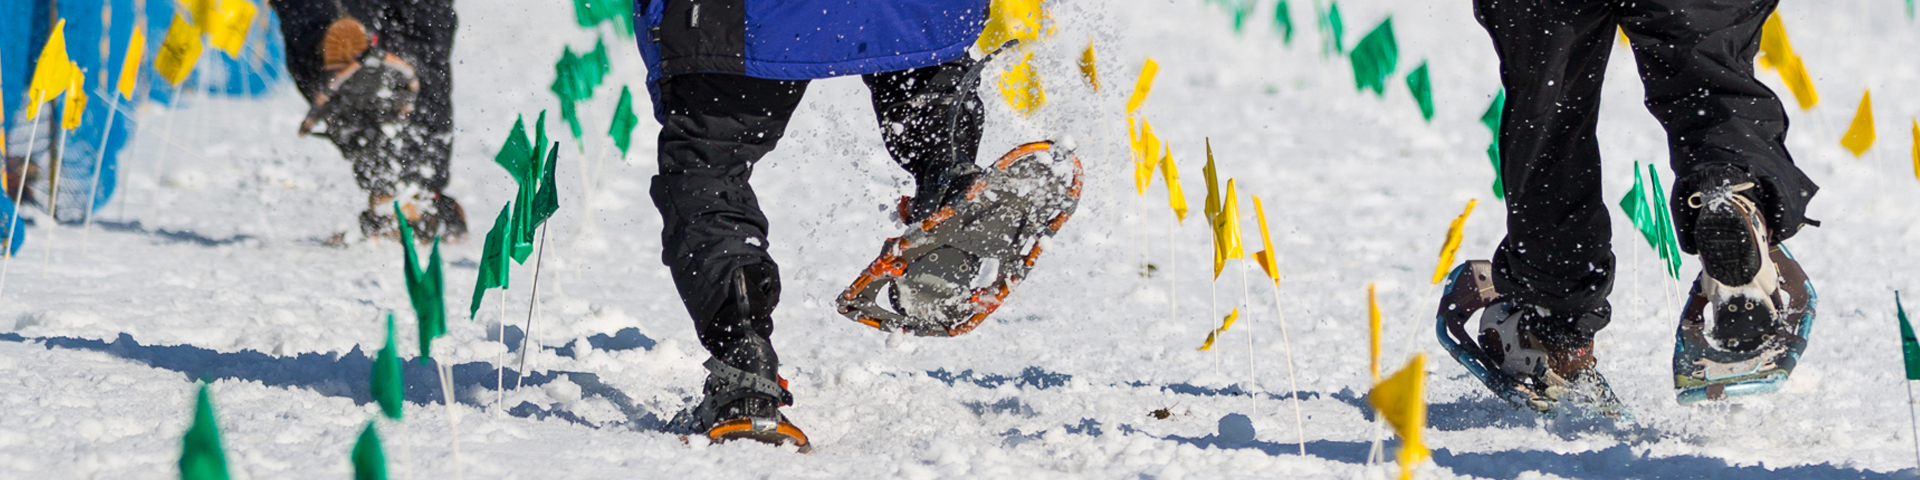 special olympics snowshoeing